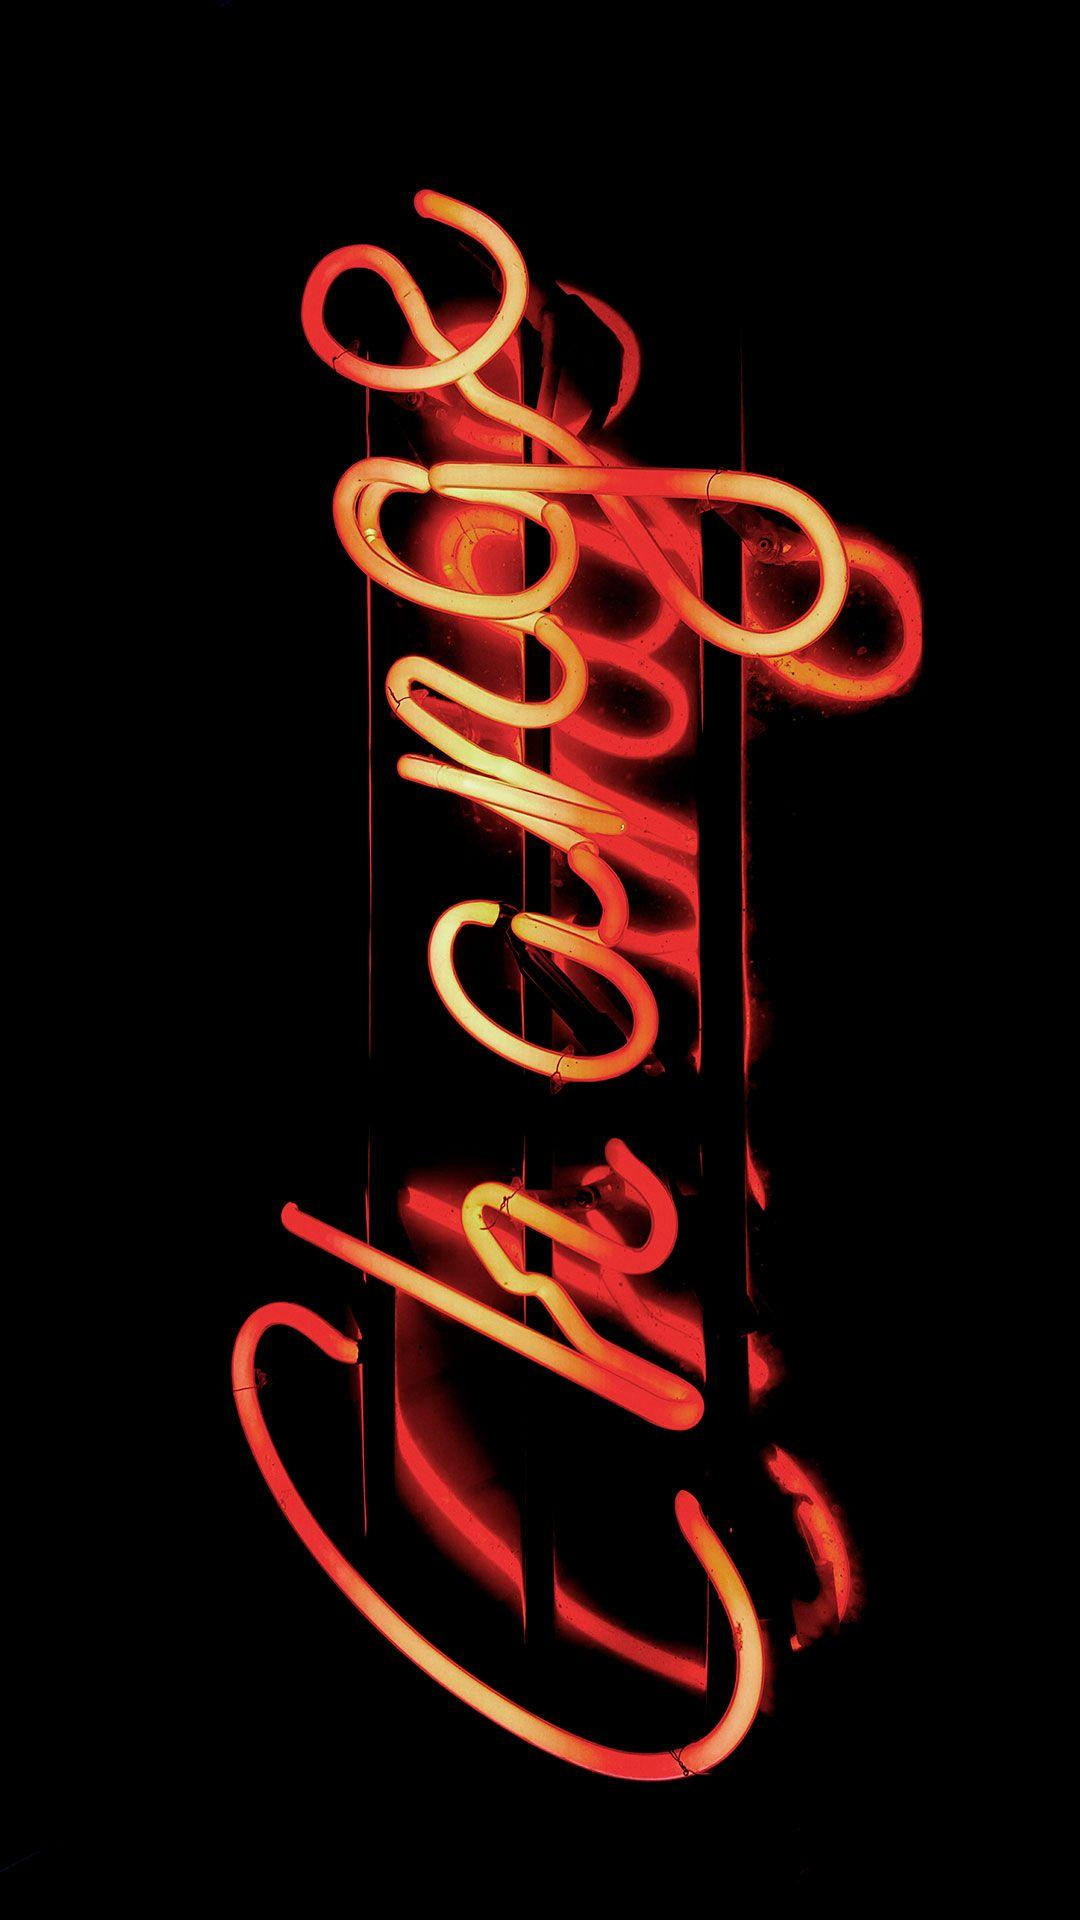 Neon Sign Wallpapers Wallpaper Cave